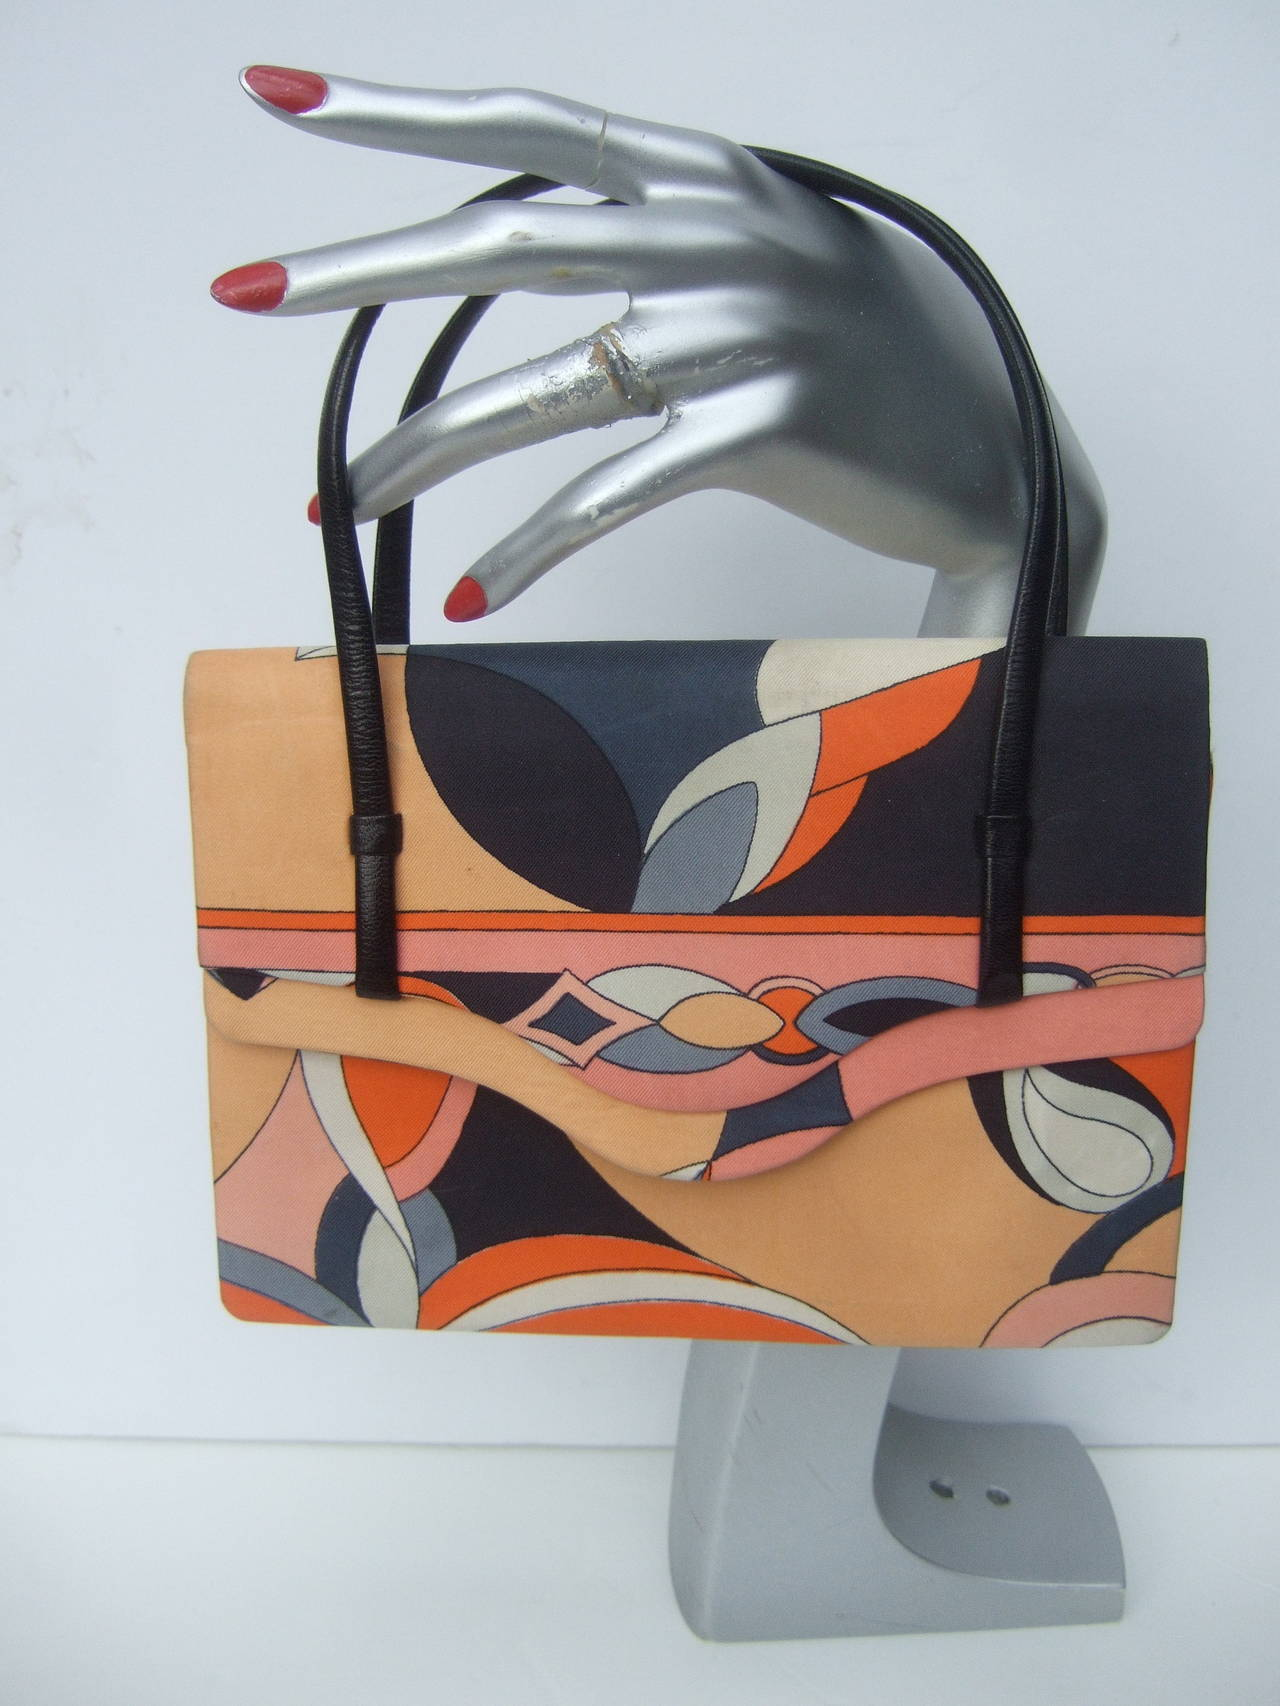 Emilio Pucci Italy Silk diminutive envelope style handbag c 1970 The mod op-art silk print is a collage of color blocked graphics The spectrum of colors range from pale pink, peach, tangerine, silver gray, gunmetal gray, white & black    The